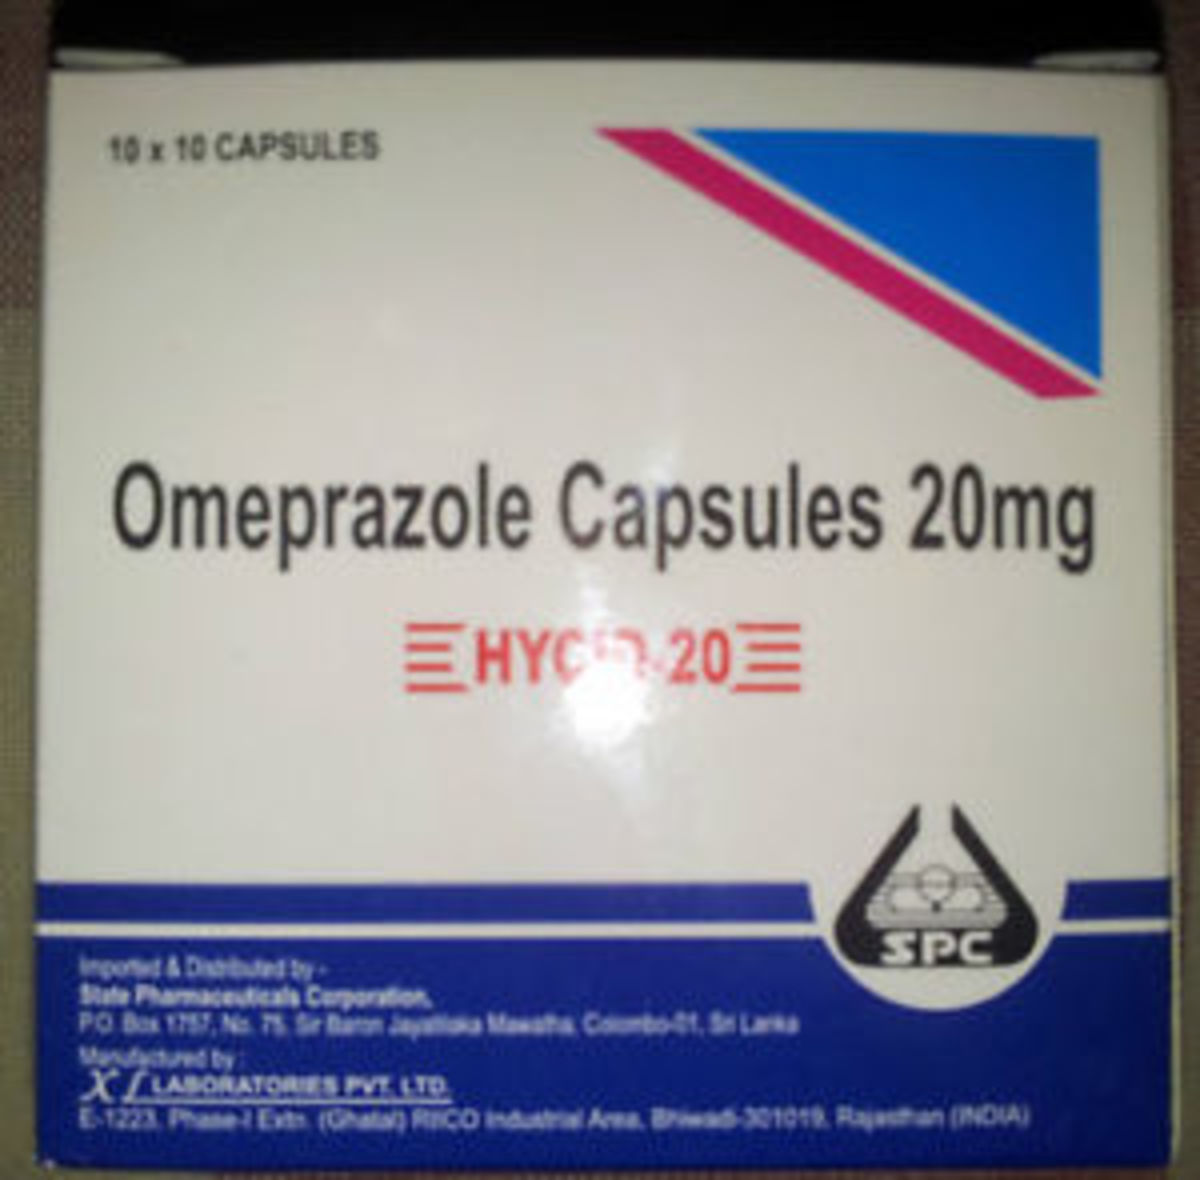 Uses and side effects of Hycid (Omeprazole)